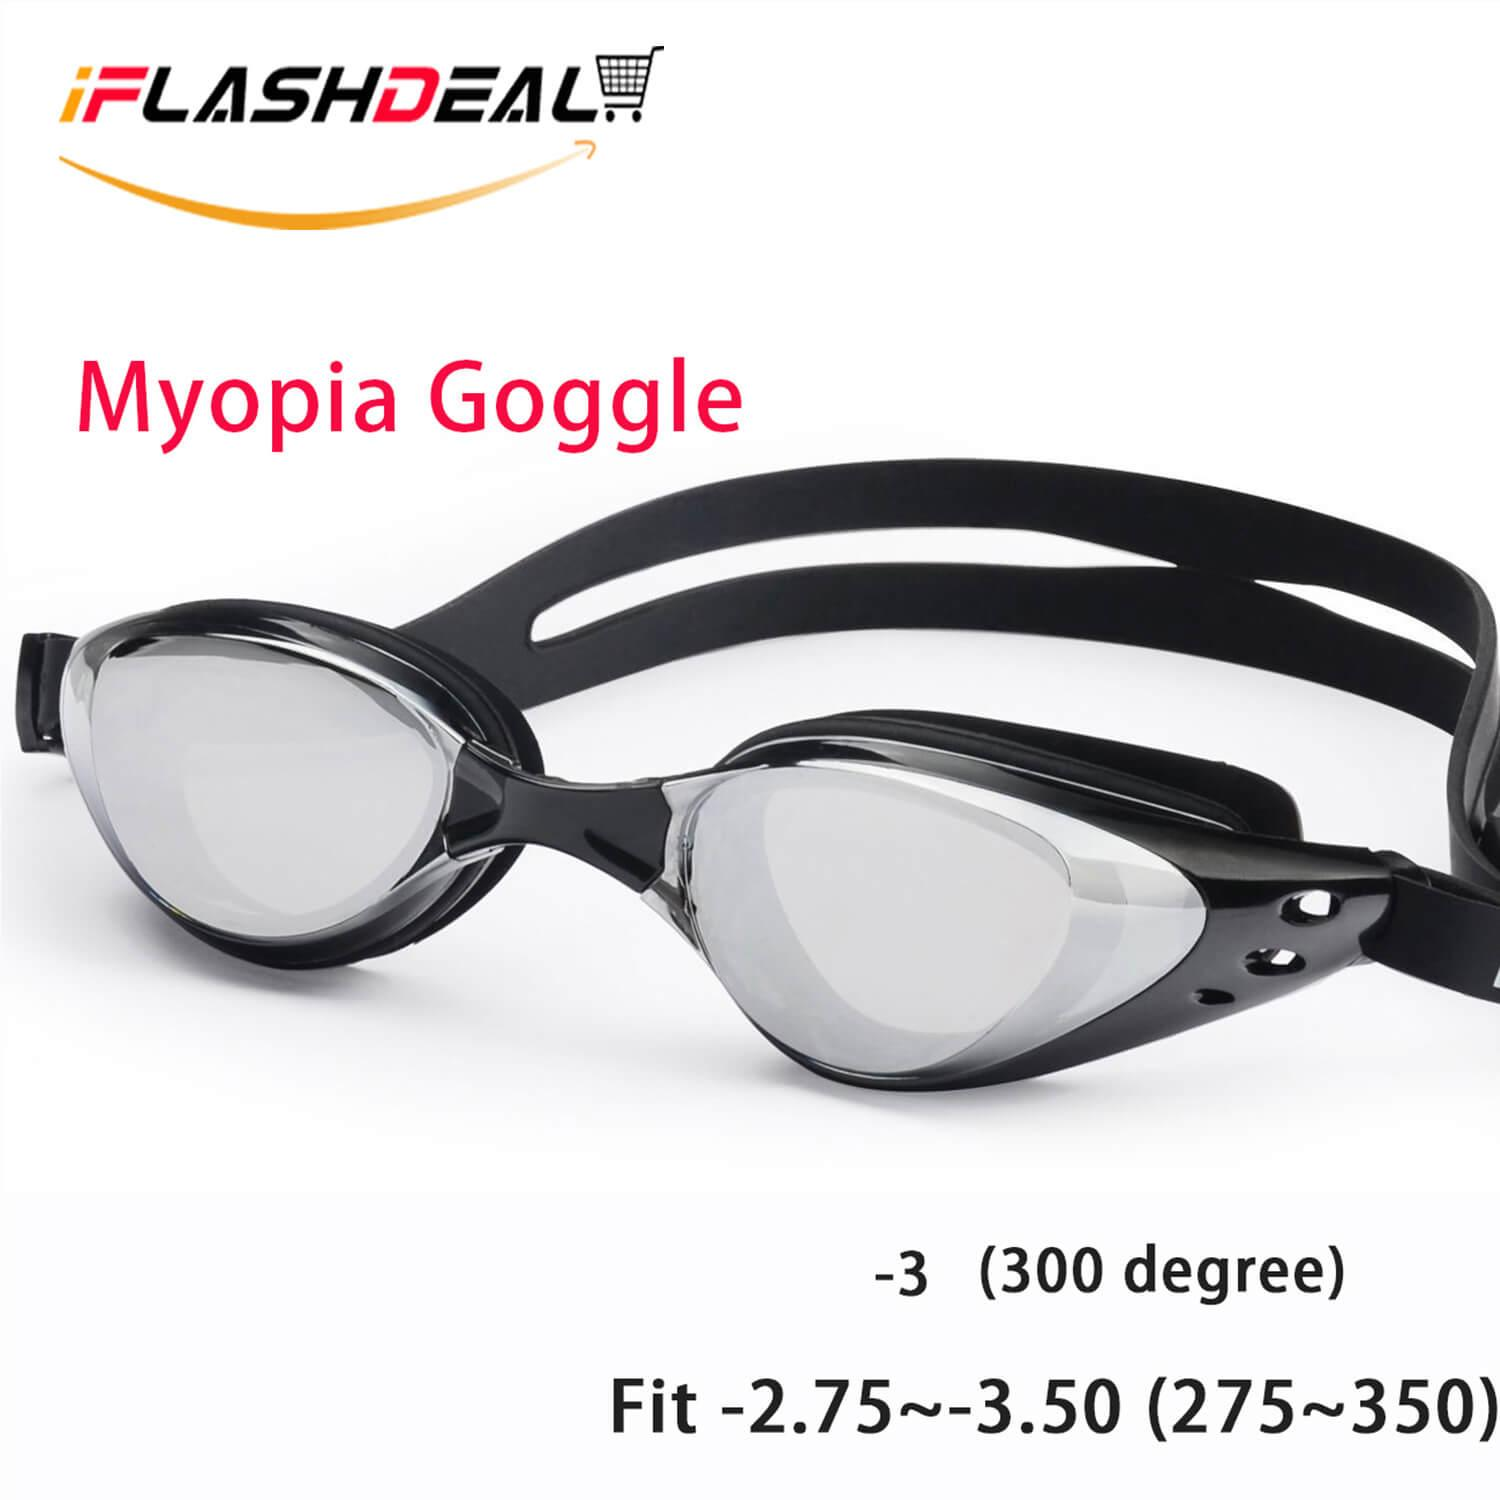 37802699c02 iFlashDeal Myopia Swim Goggles Swimming Goggles No Leaking Anti Fog UV  Protection Suit for -2